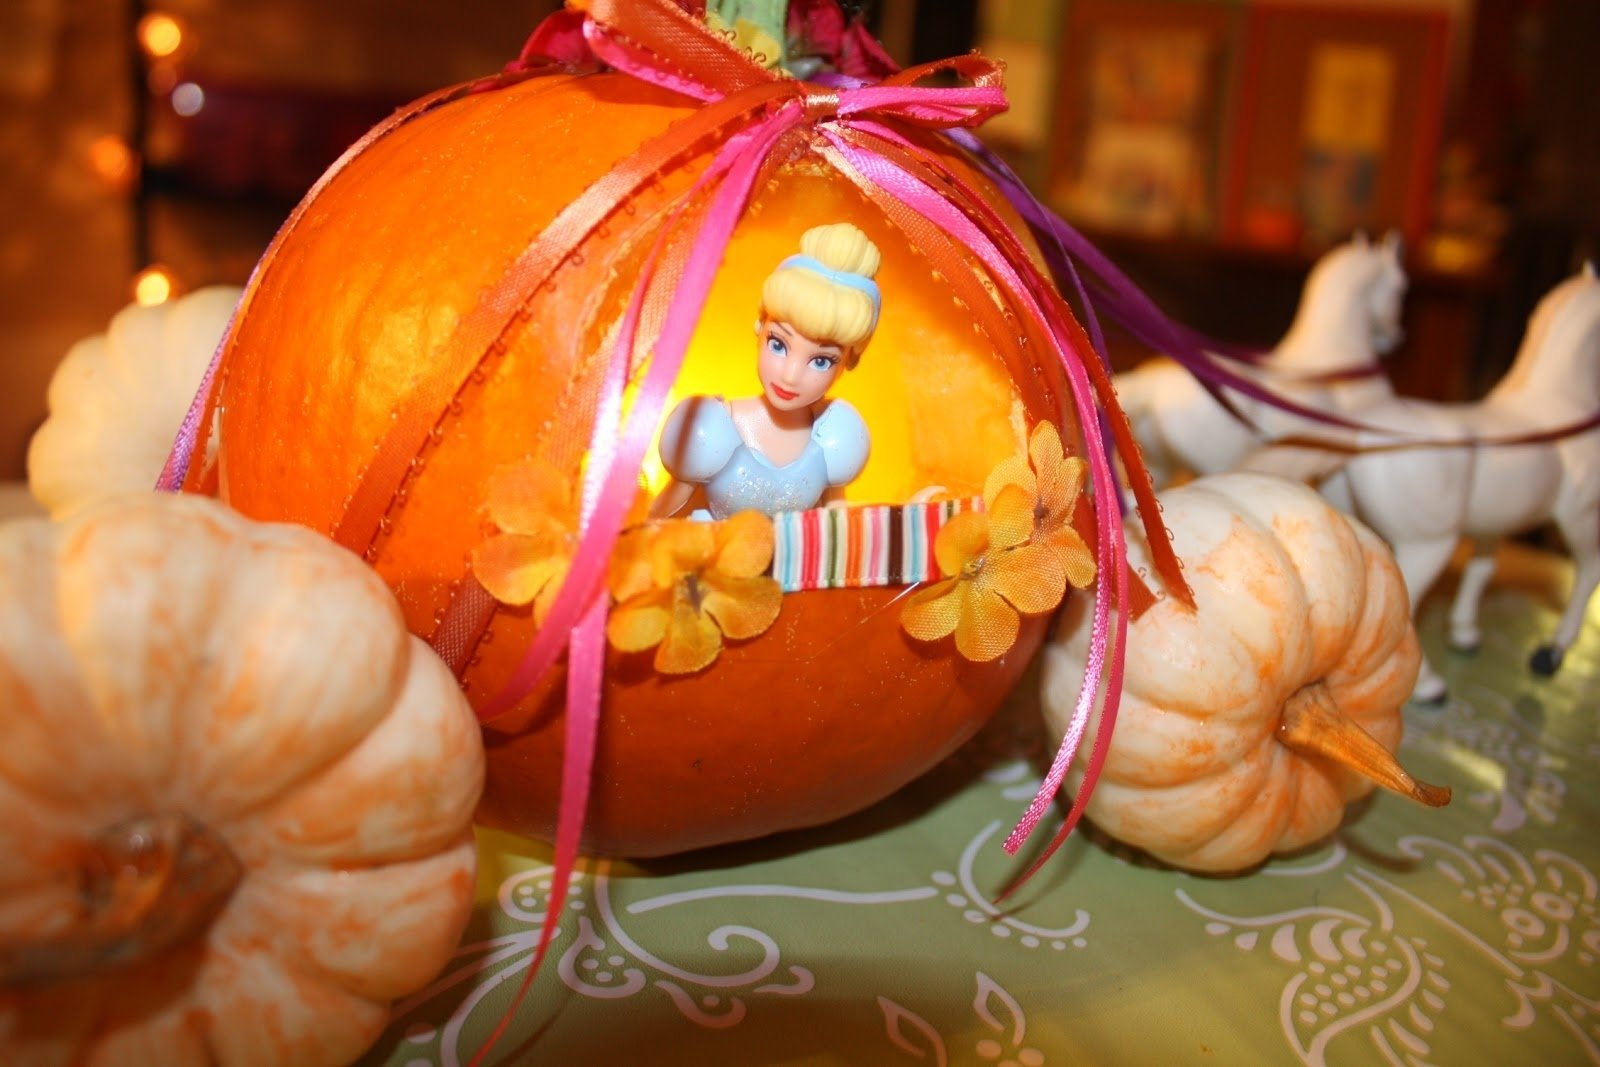 10 Famous Pumpkin Carving Ideas For Girls decorating ideas interesting image of girl kid halloween 2020